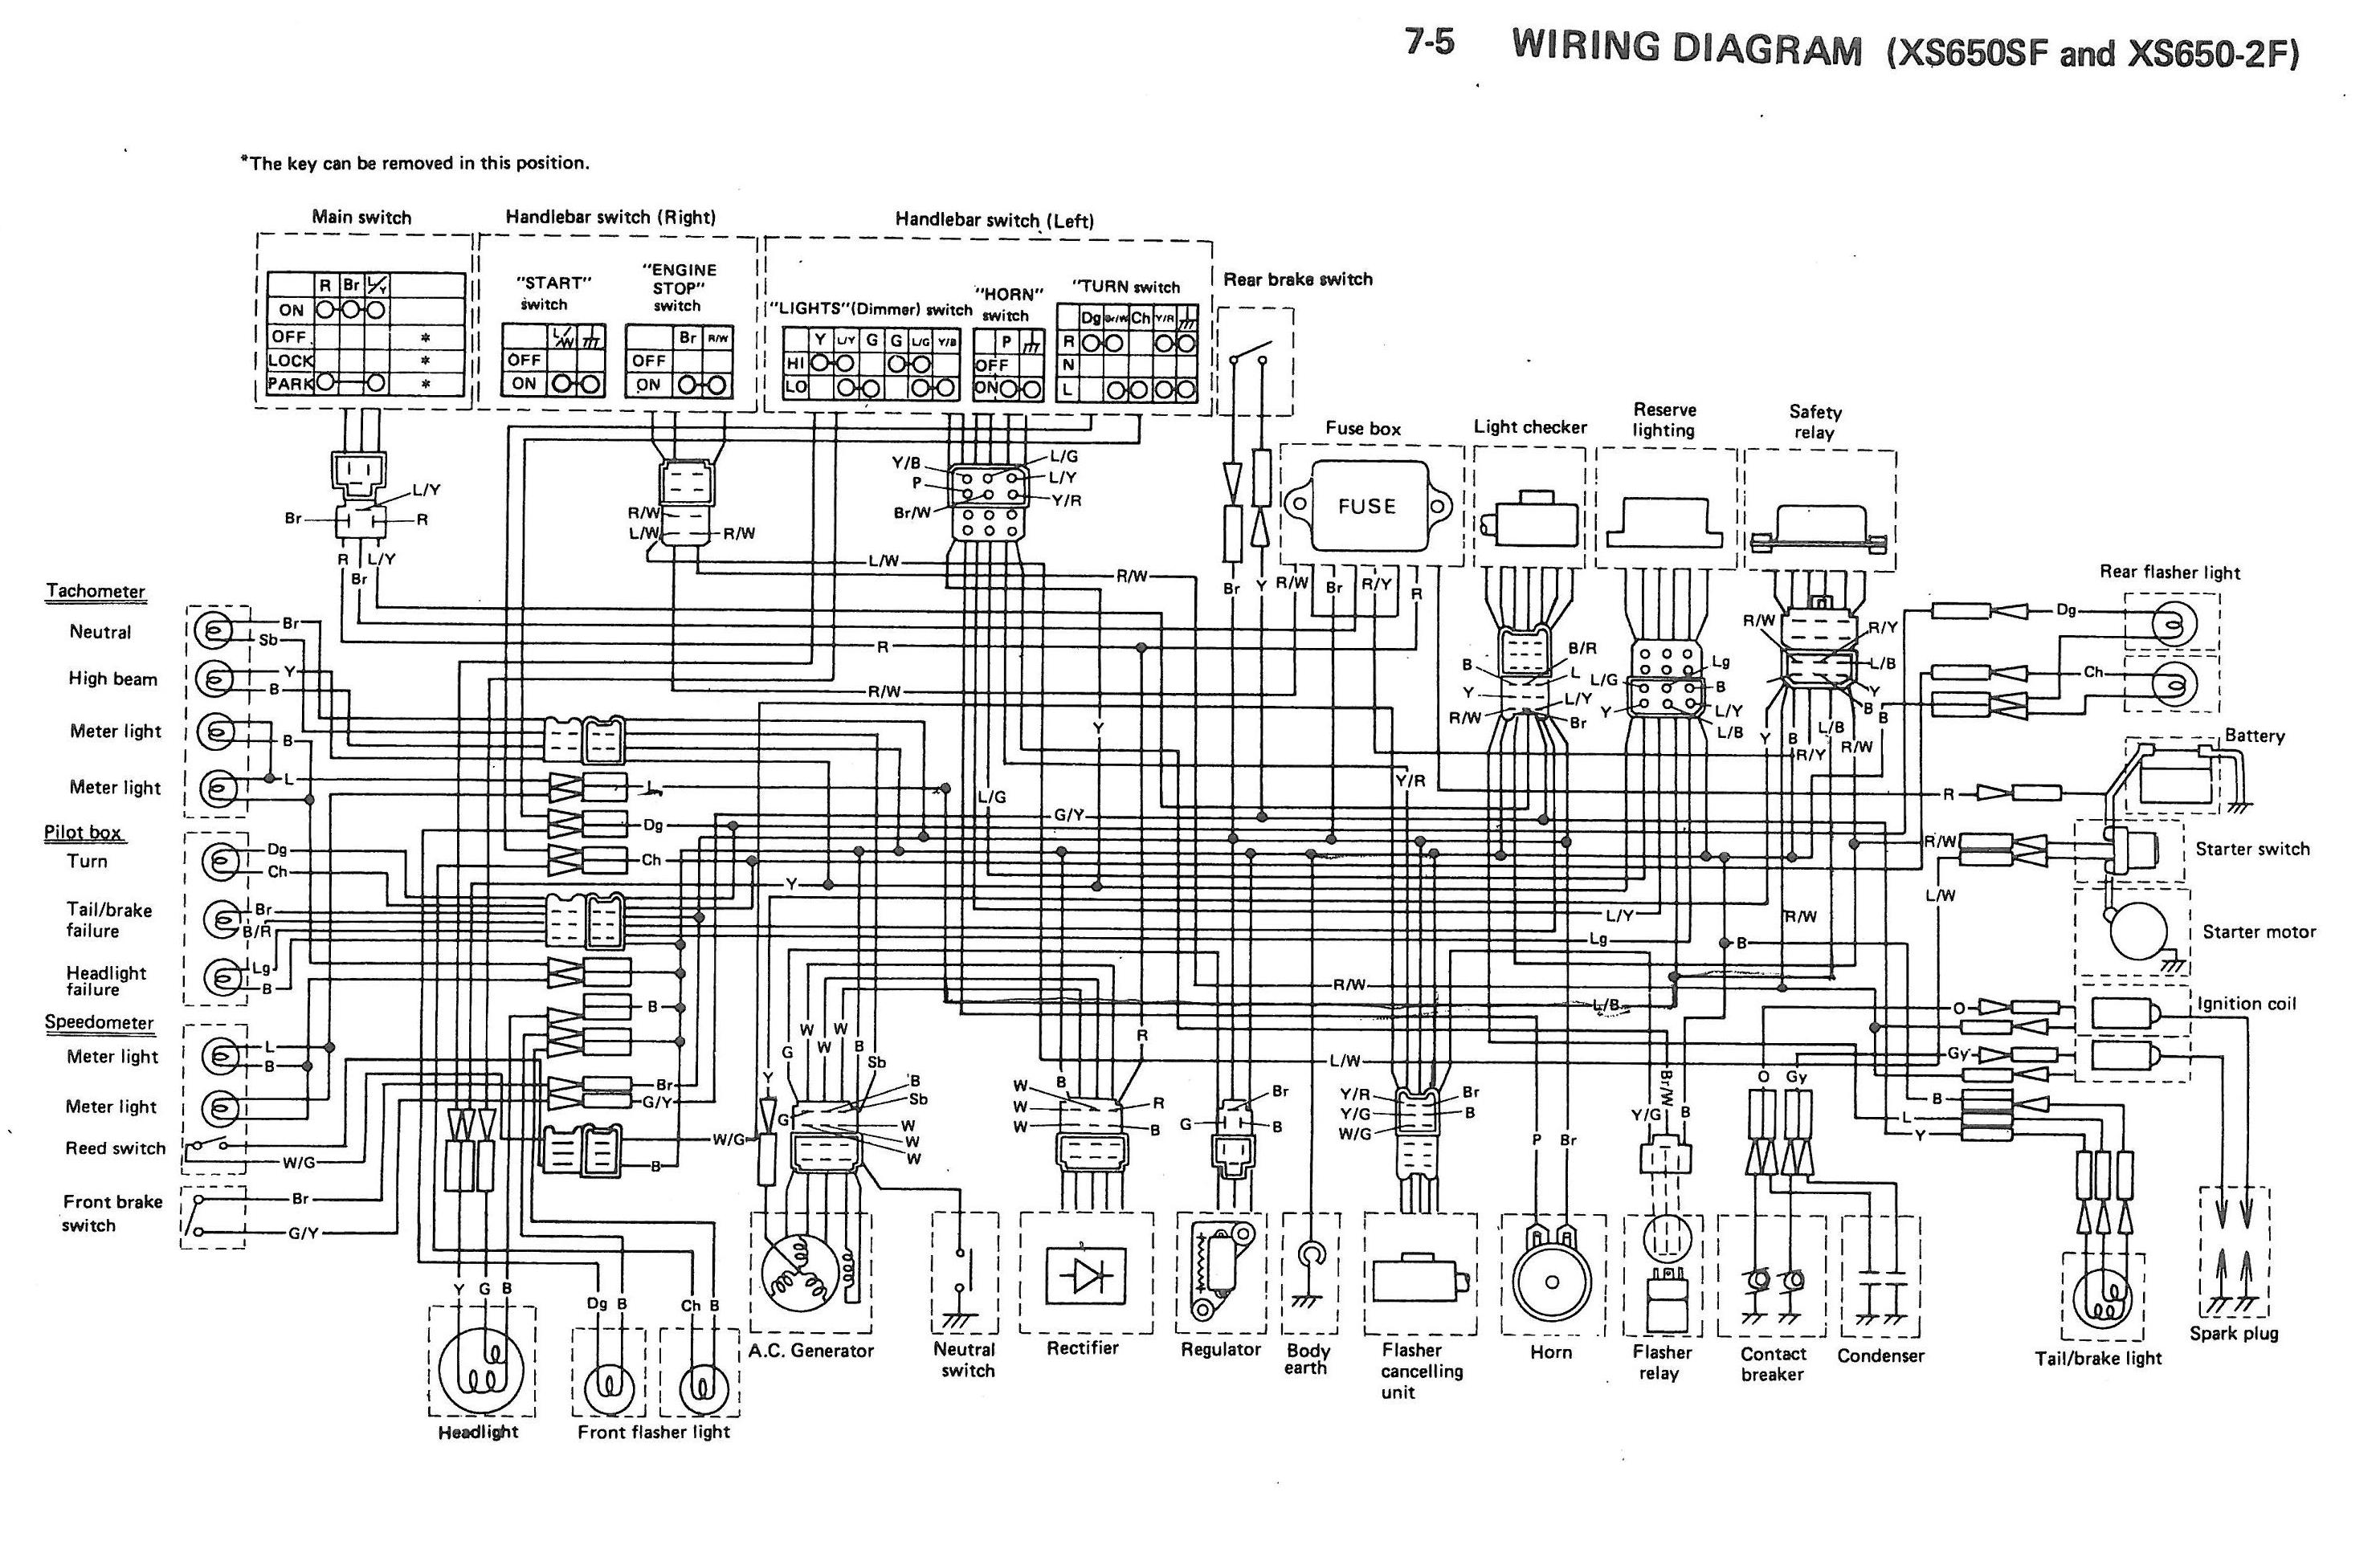 yamaha wiring diagram for xs1100 1978 - wiring diagram last-ignition -  last-ignition.networkantidiscriminazione.it  networkantidiscriminazione.it